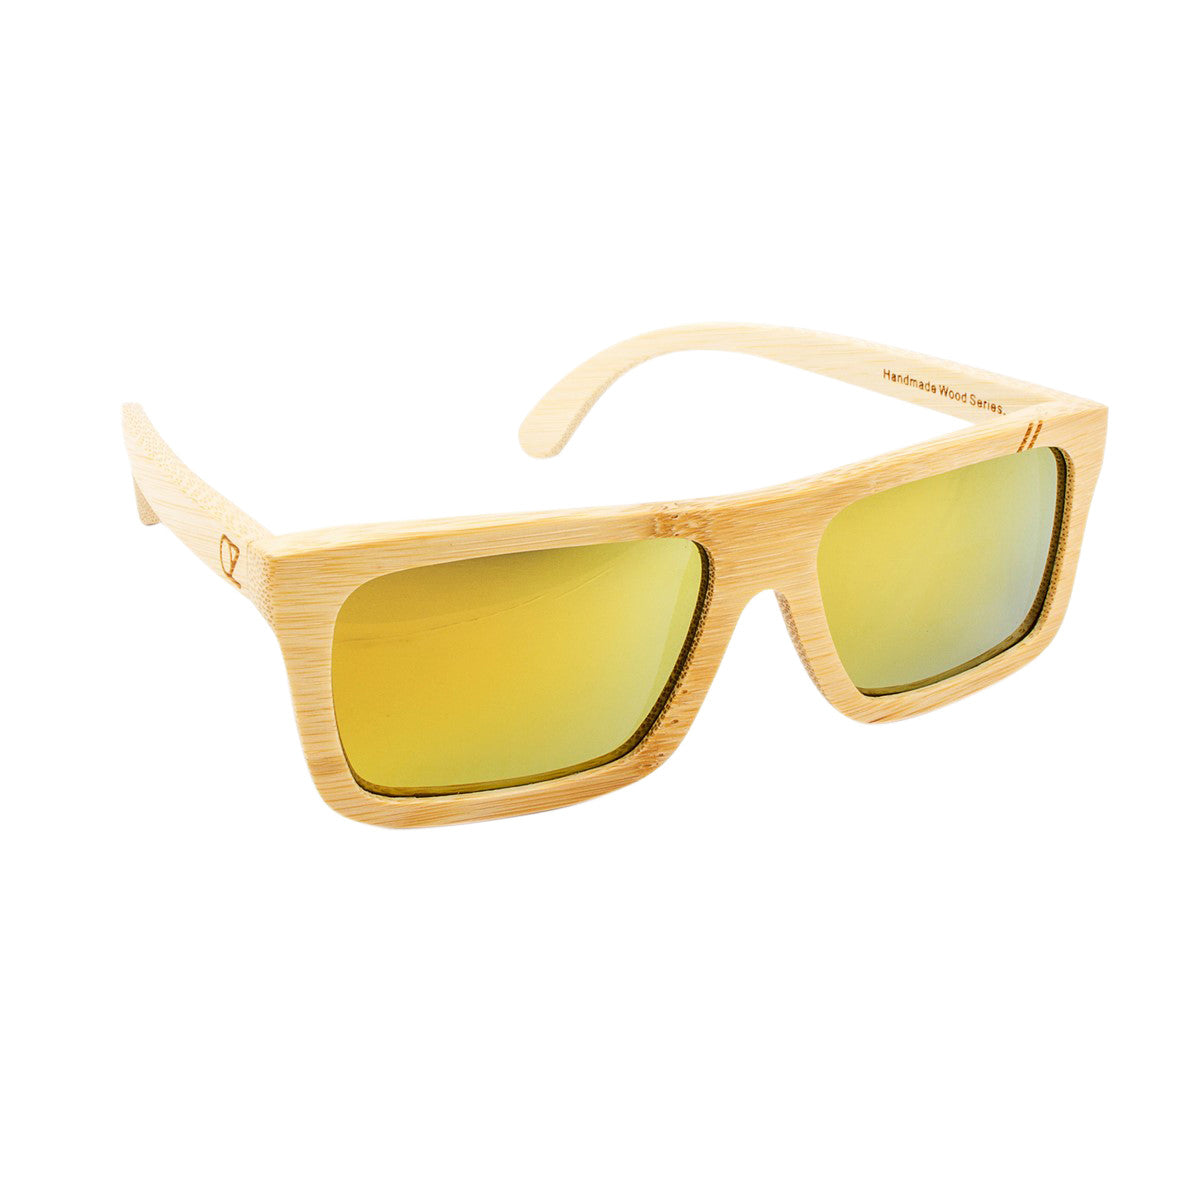 Wooden sunglasses Chill